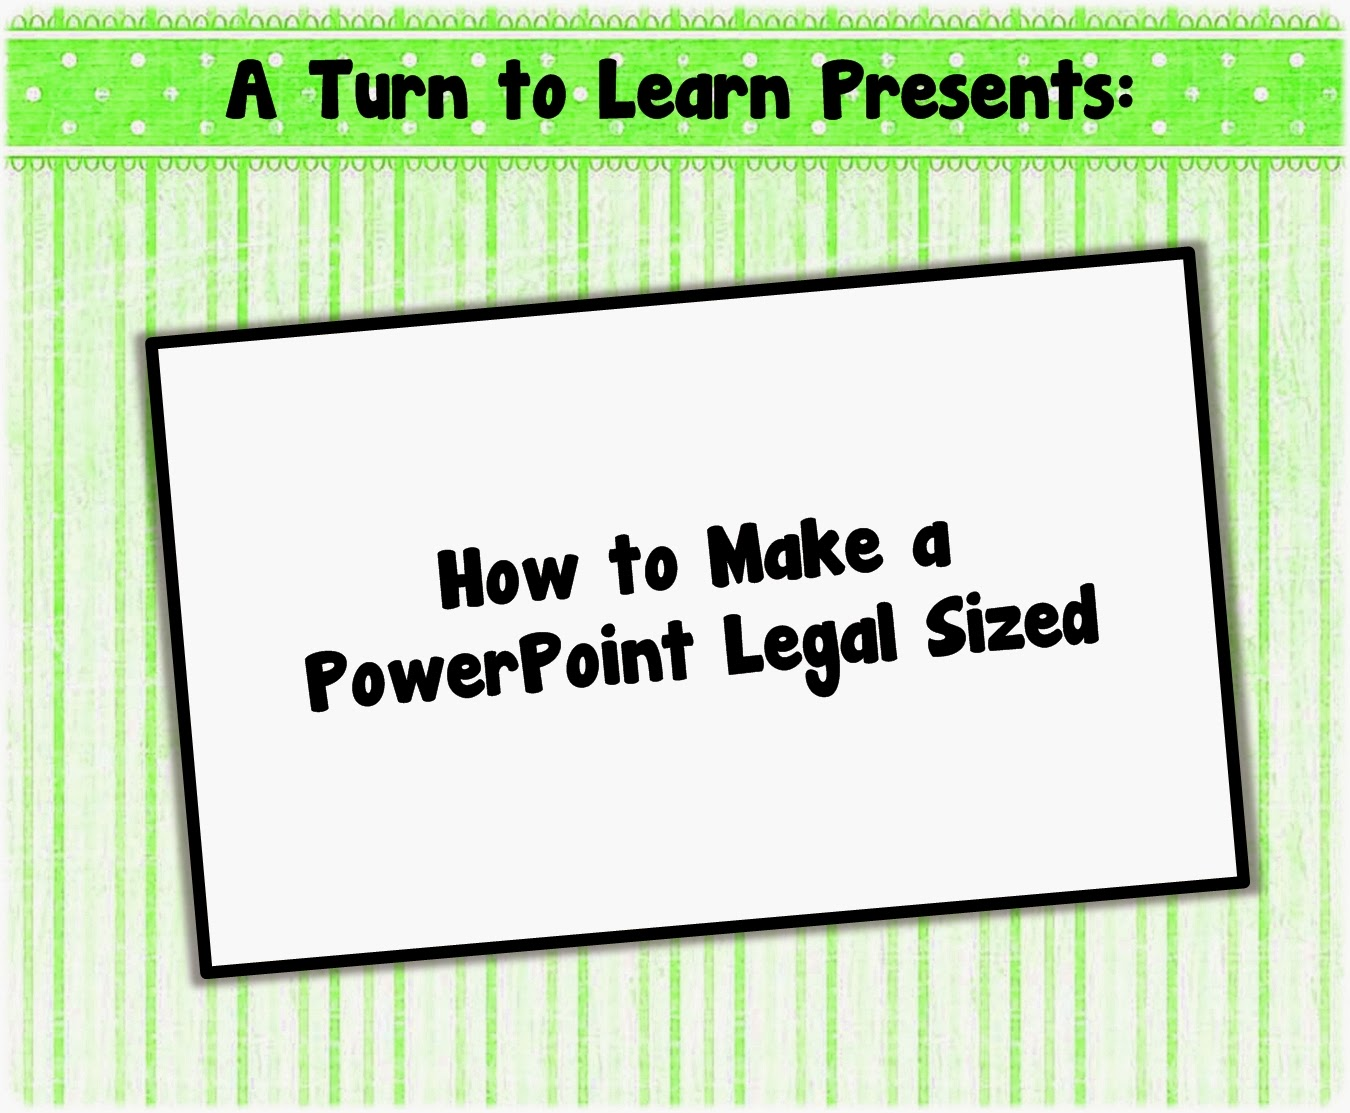 http://aturntolearn.blogspot.com/2014/02/how-to-make-powerpoint-legal-sized.html